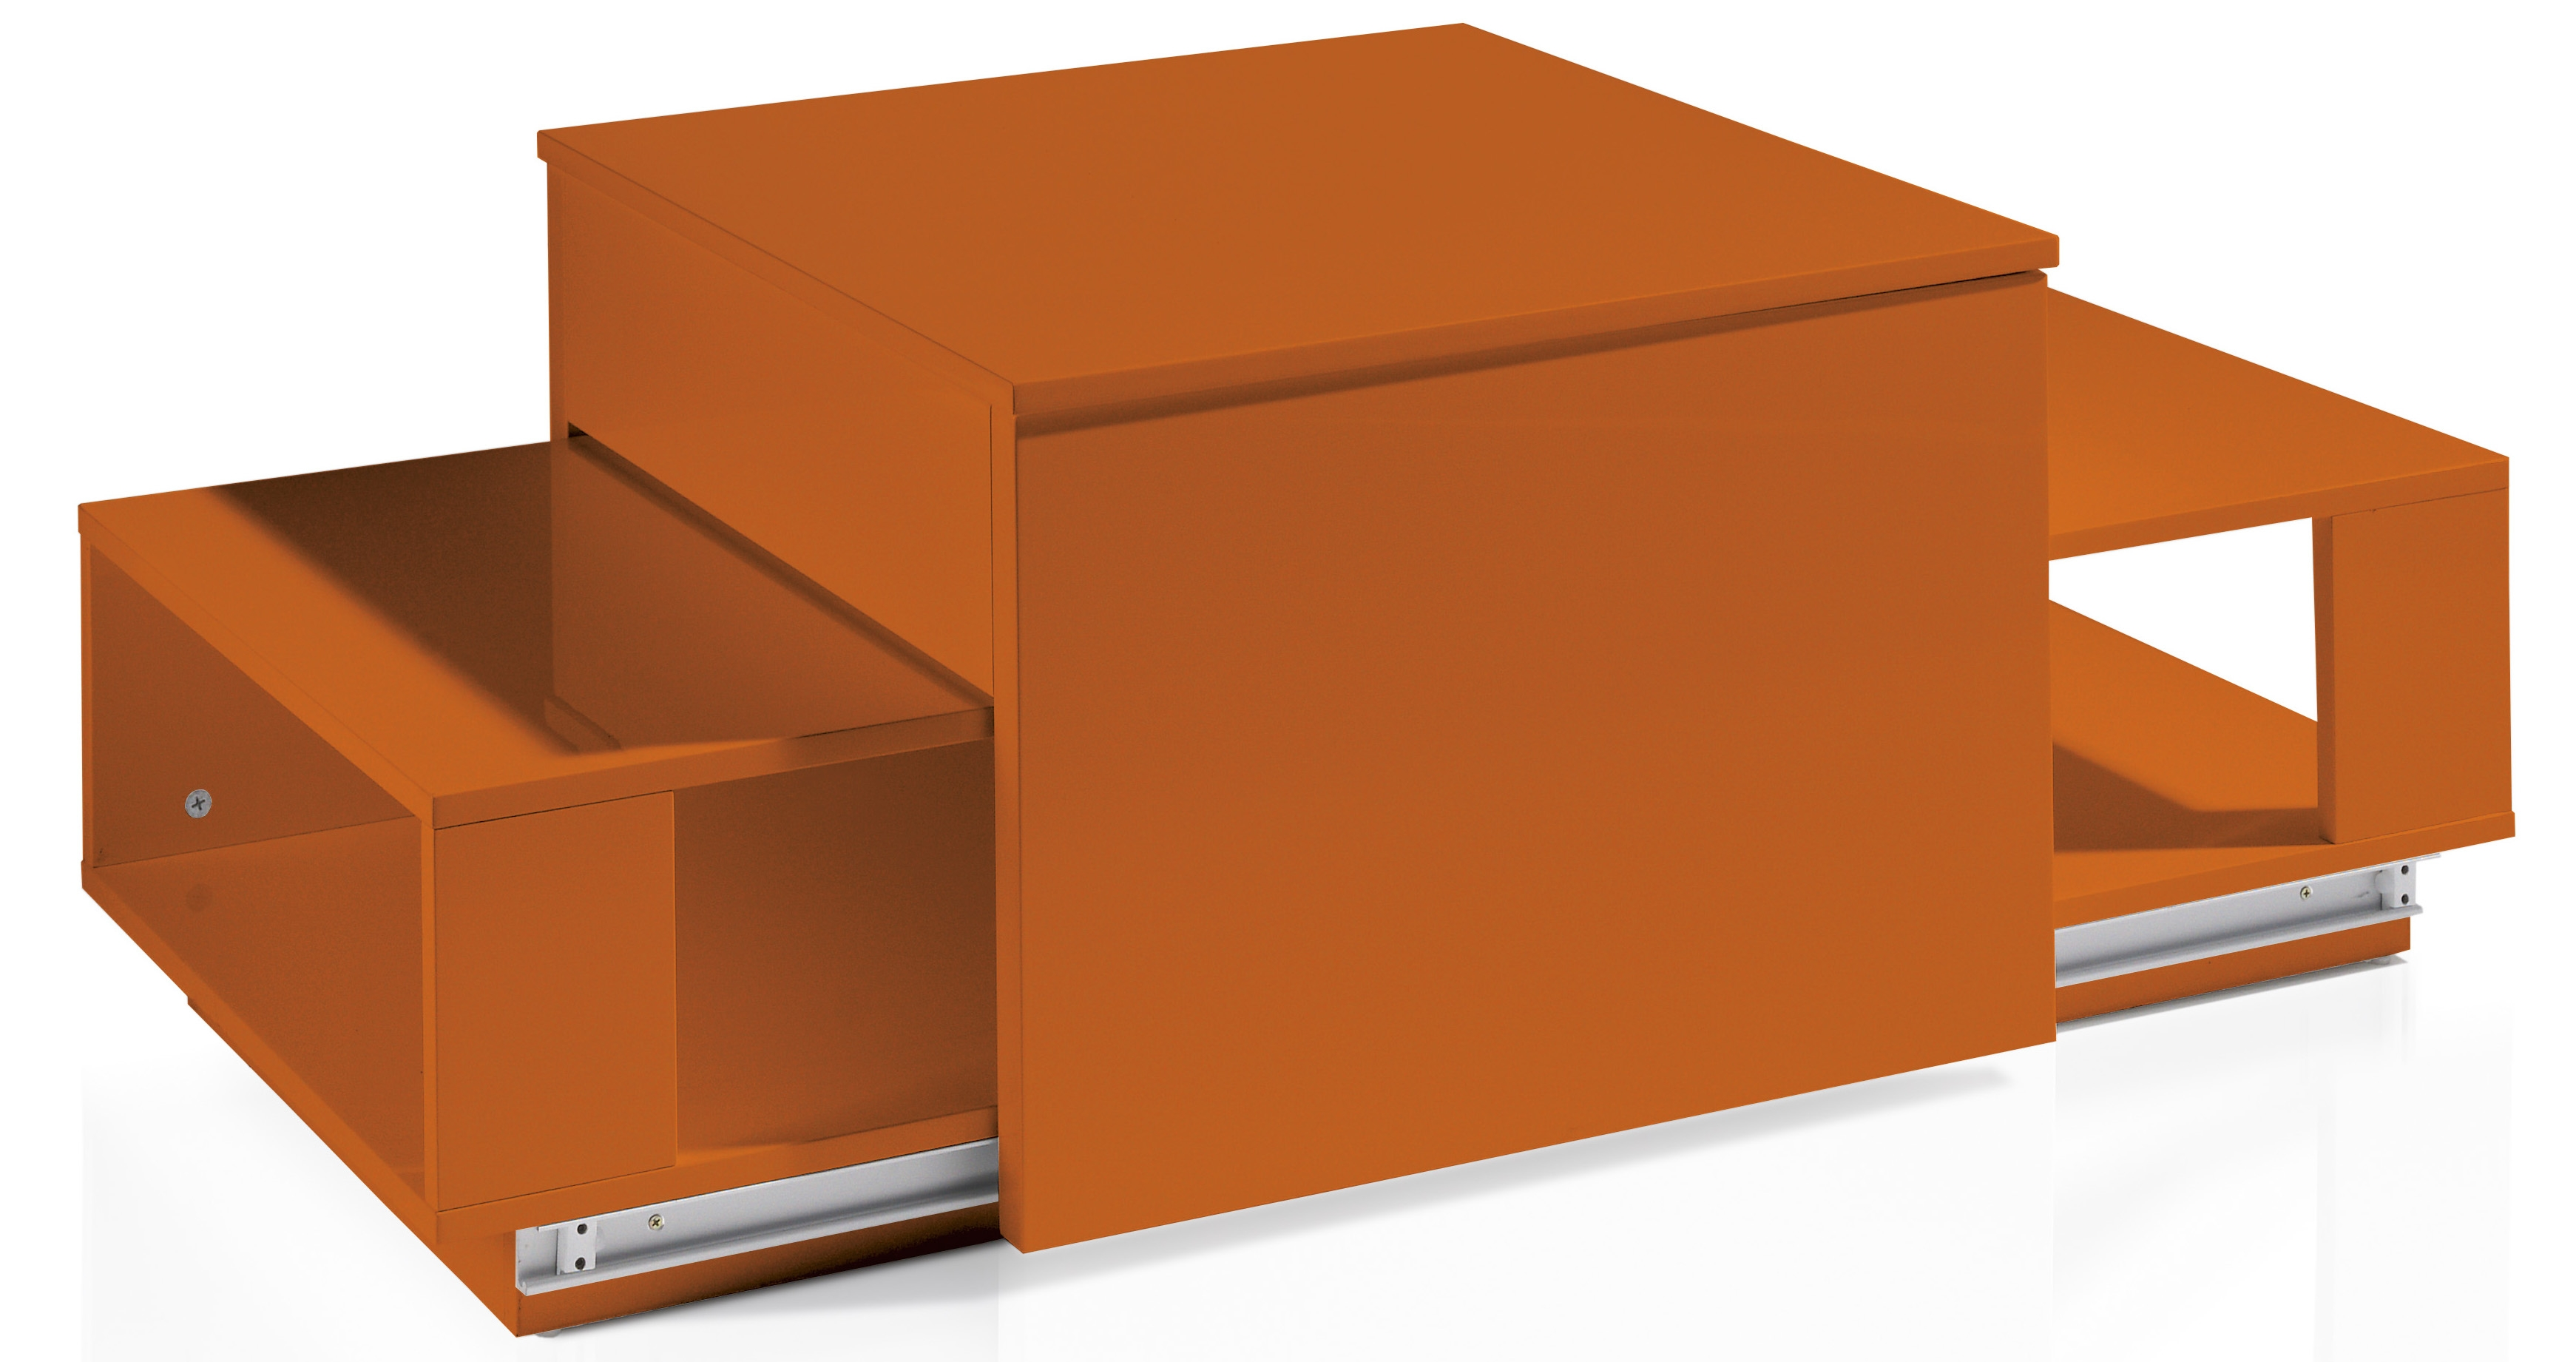 table basse relevable laquée orange optima | lestendances.fr